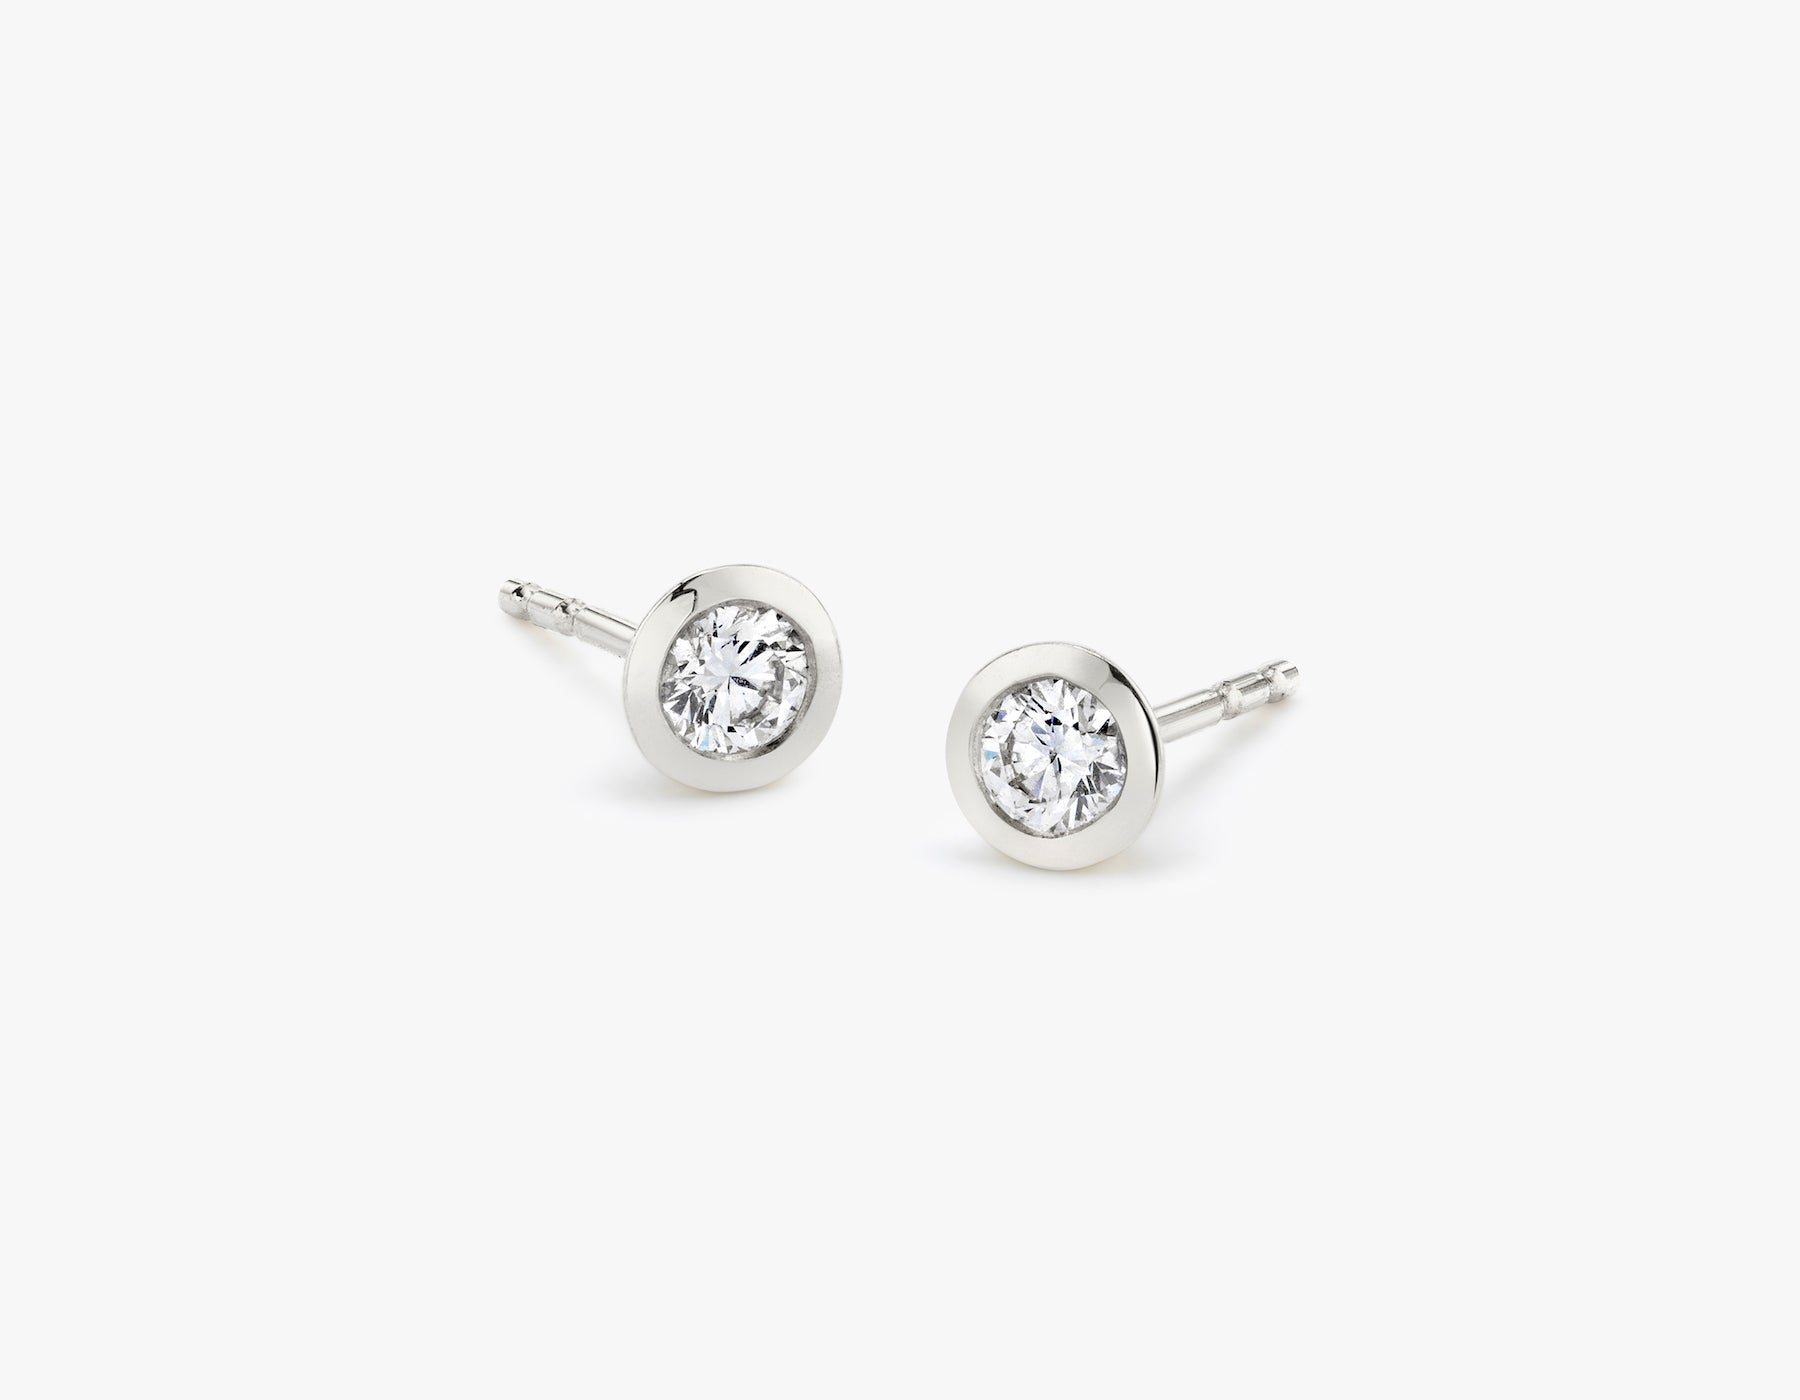 Vrai simple minimalist Round Diamond Bezel Earrings, 14K White Gold